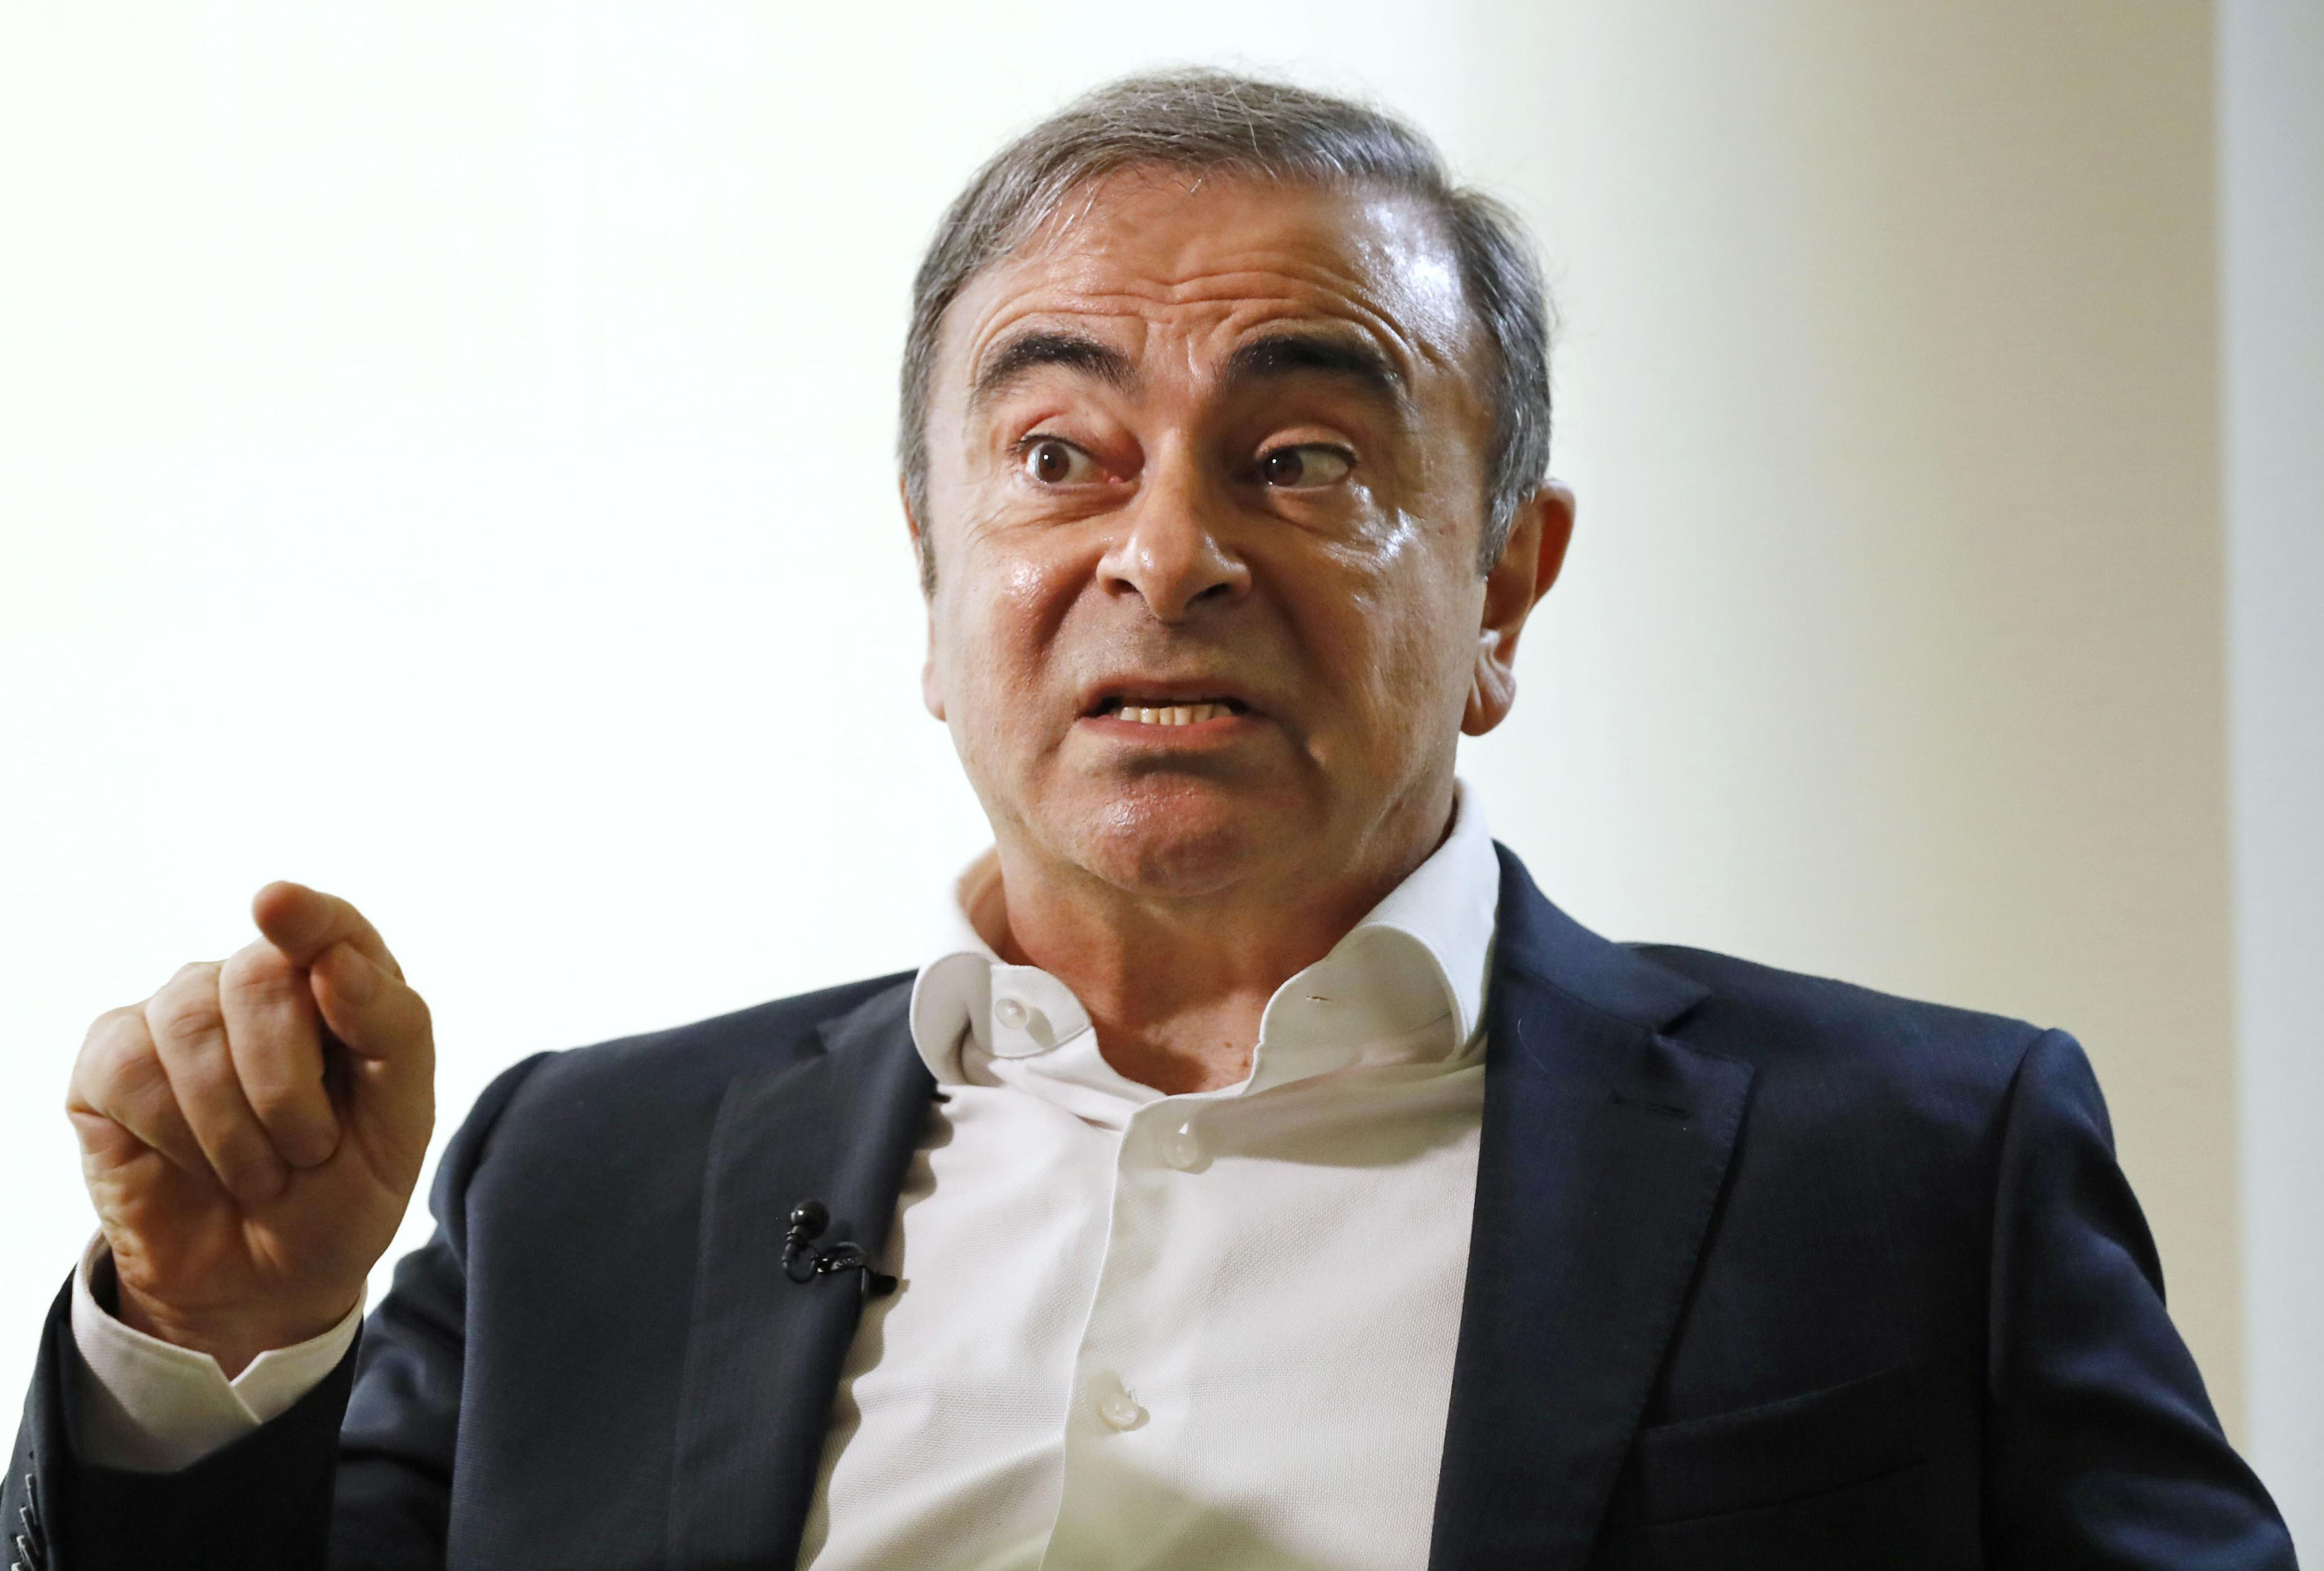 Former Nissan Chairman Carlos Ghosn speaks to Japanese media during an interview in Beirut, Lebanon, on Jan. 10, 2020.